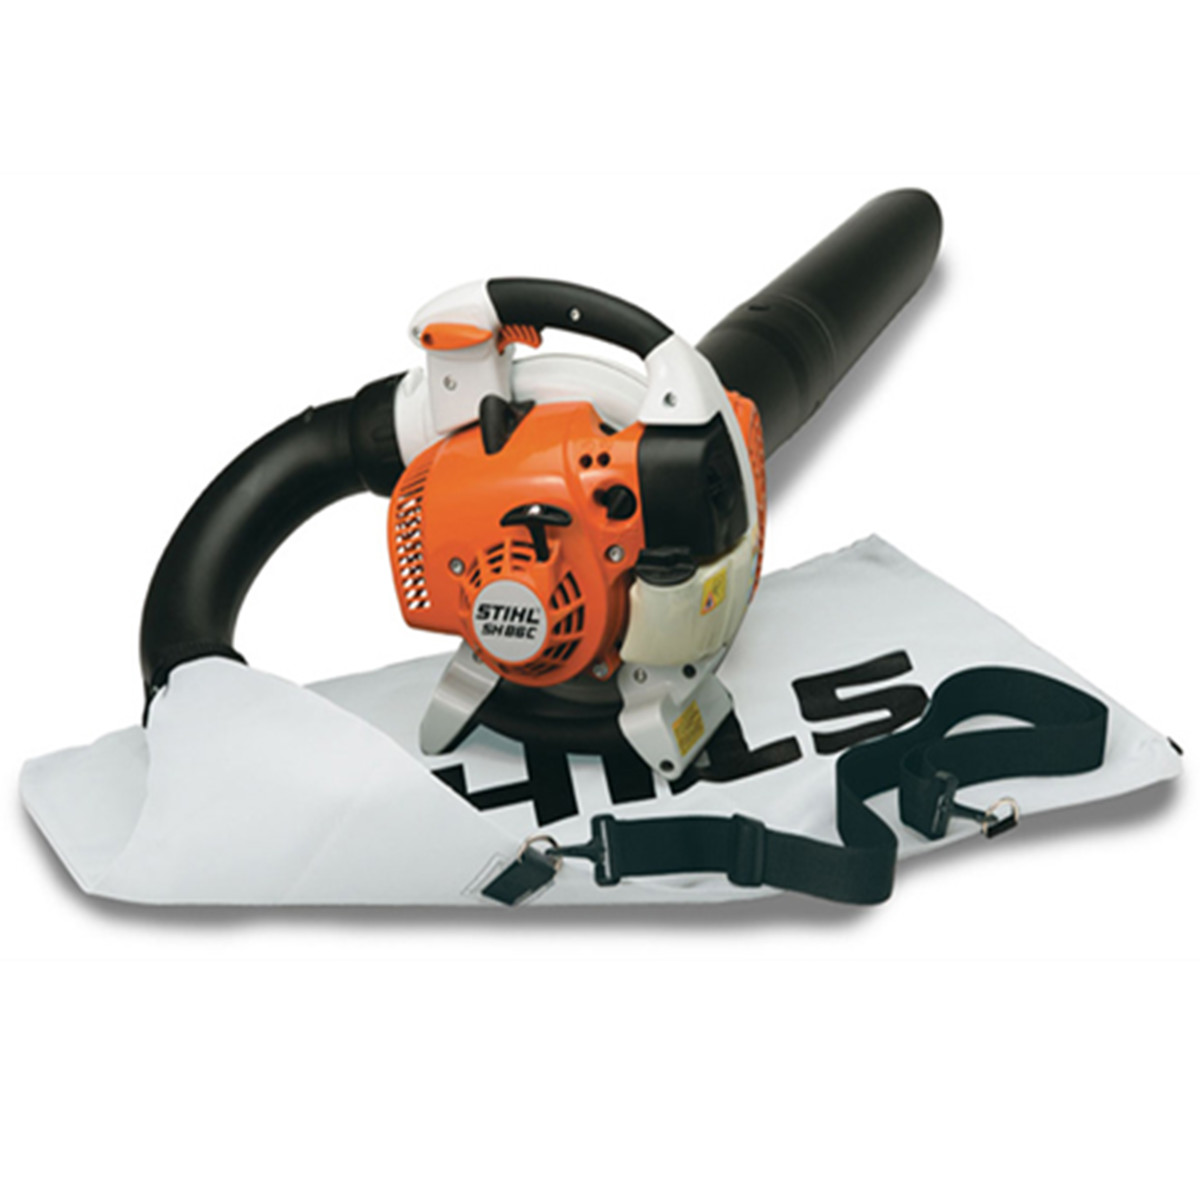 Stihl Power Blowers : Stihl blower sh c e